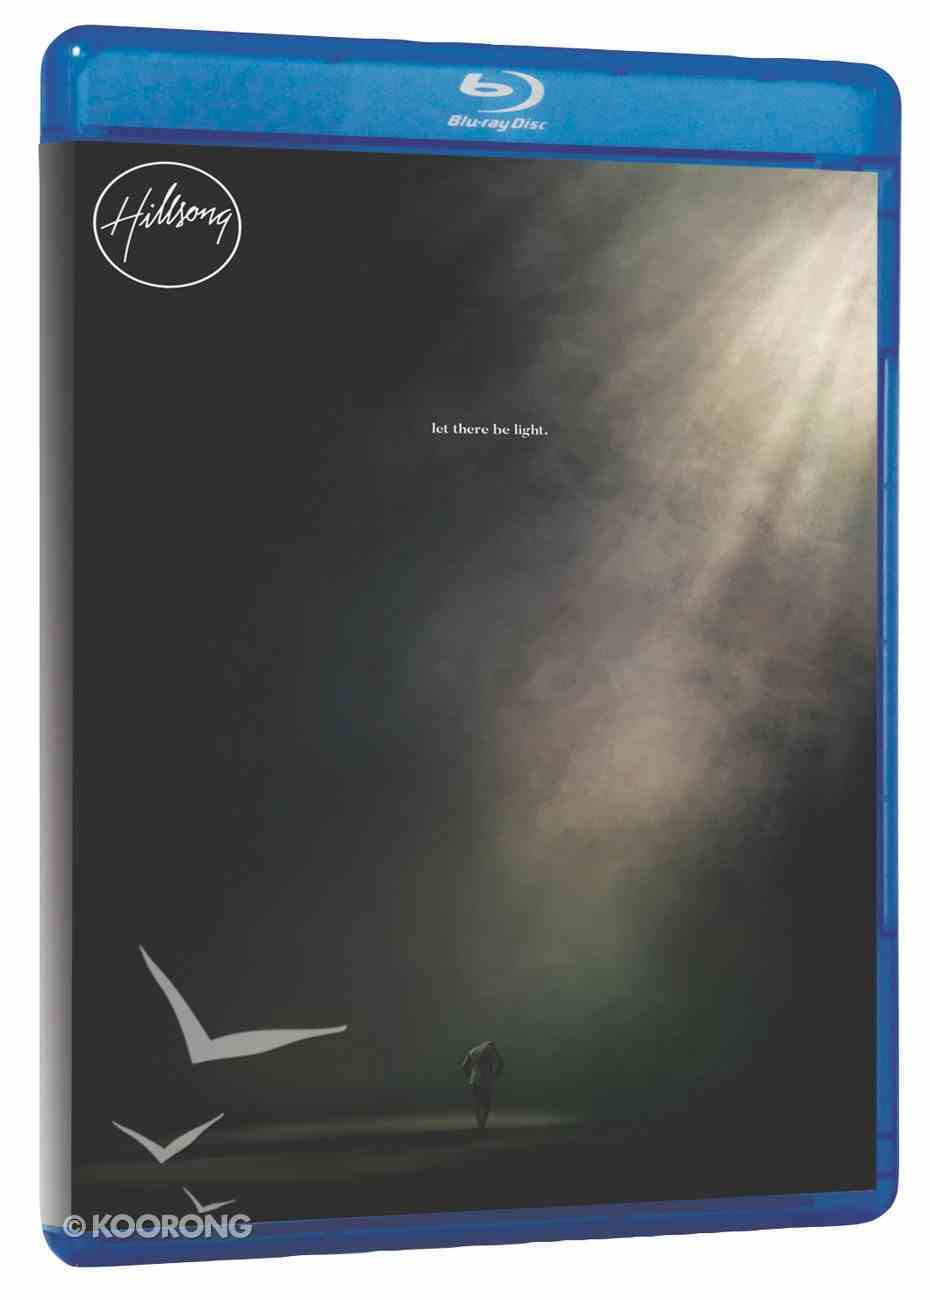 2016 Let There Be Light (Blu-ray Triple Play) Blu-ray Disc